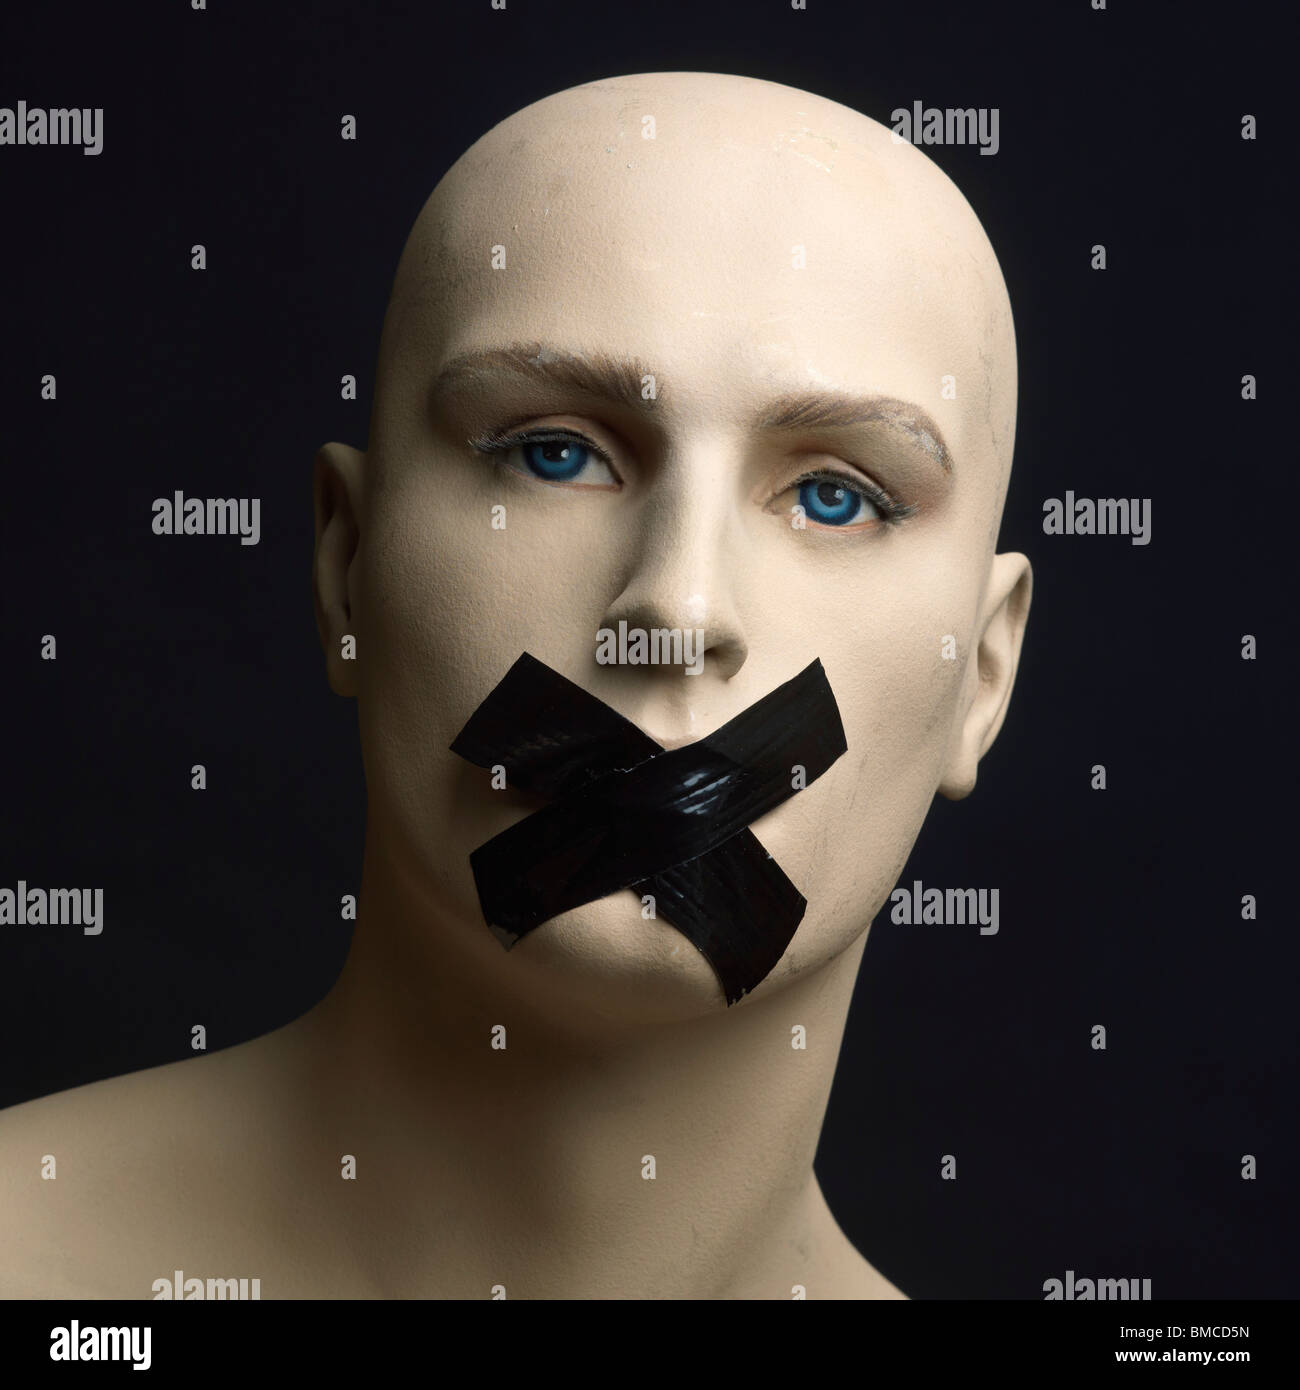 Dummy, mannequin, tape over mouth - censorship / secrecy / gagging / silence / free speech concept - Stock Image